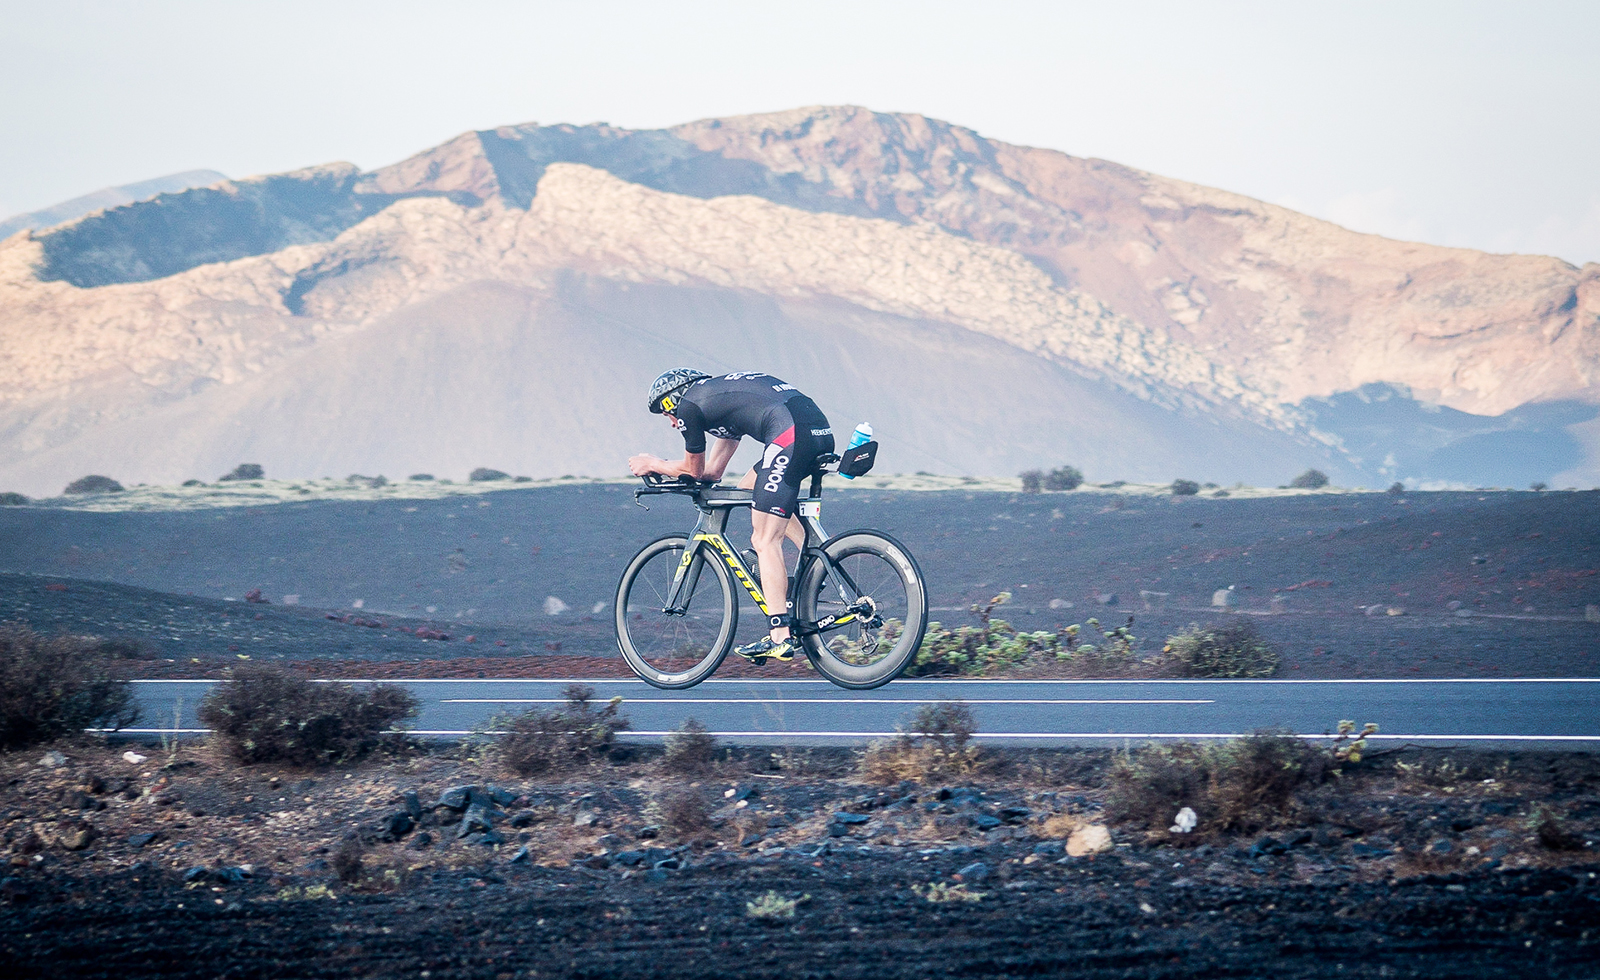 Ironman 70.3 Lanzarote - cover image